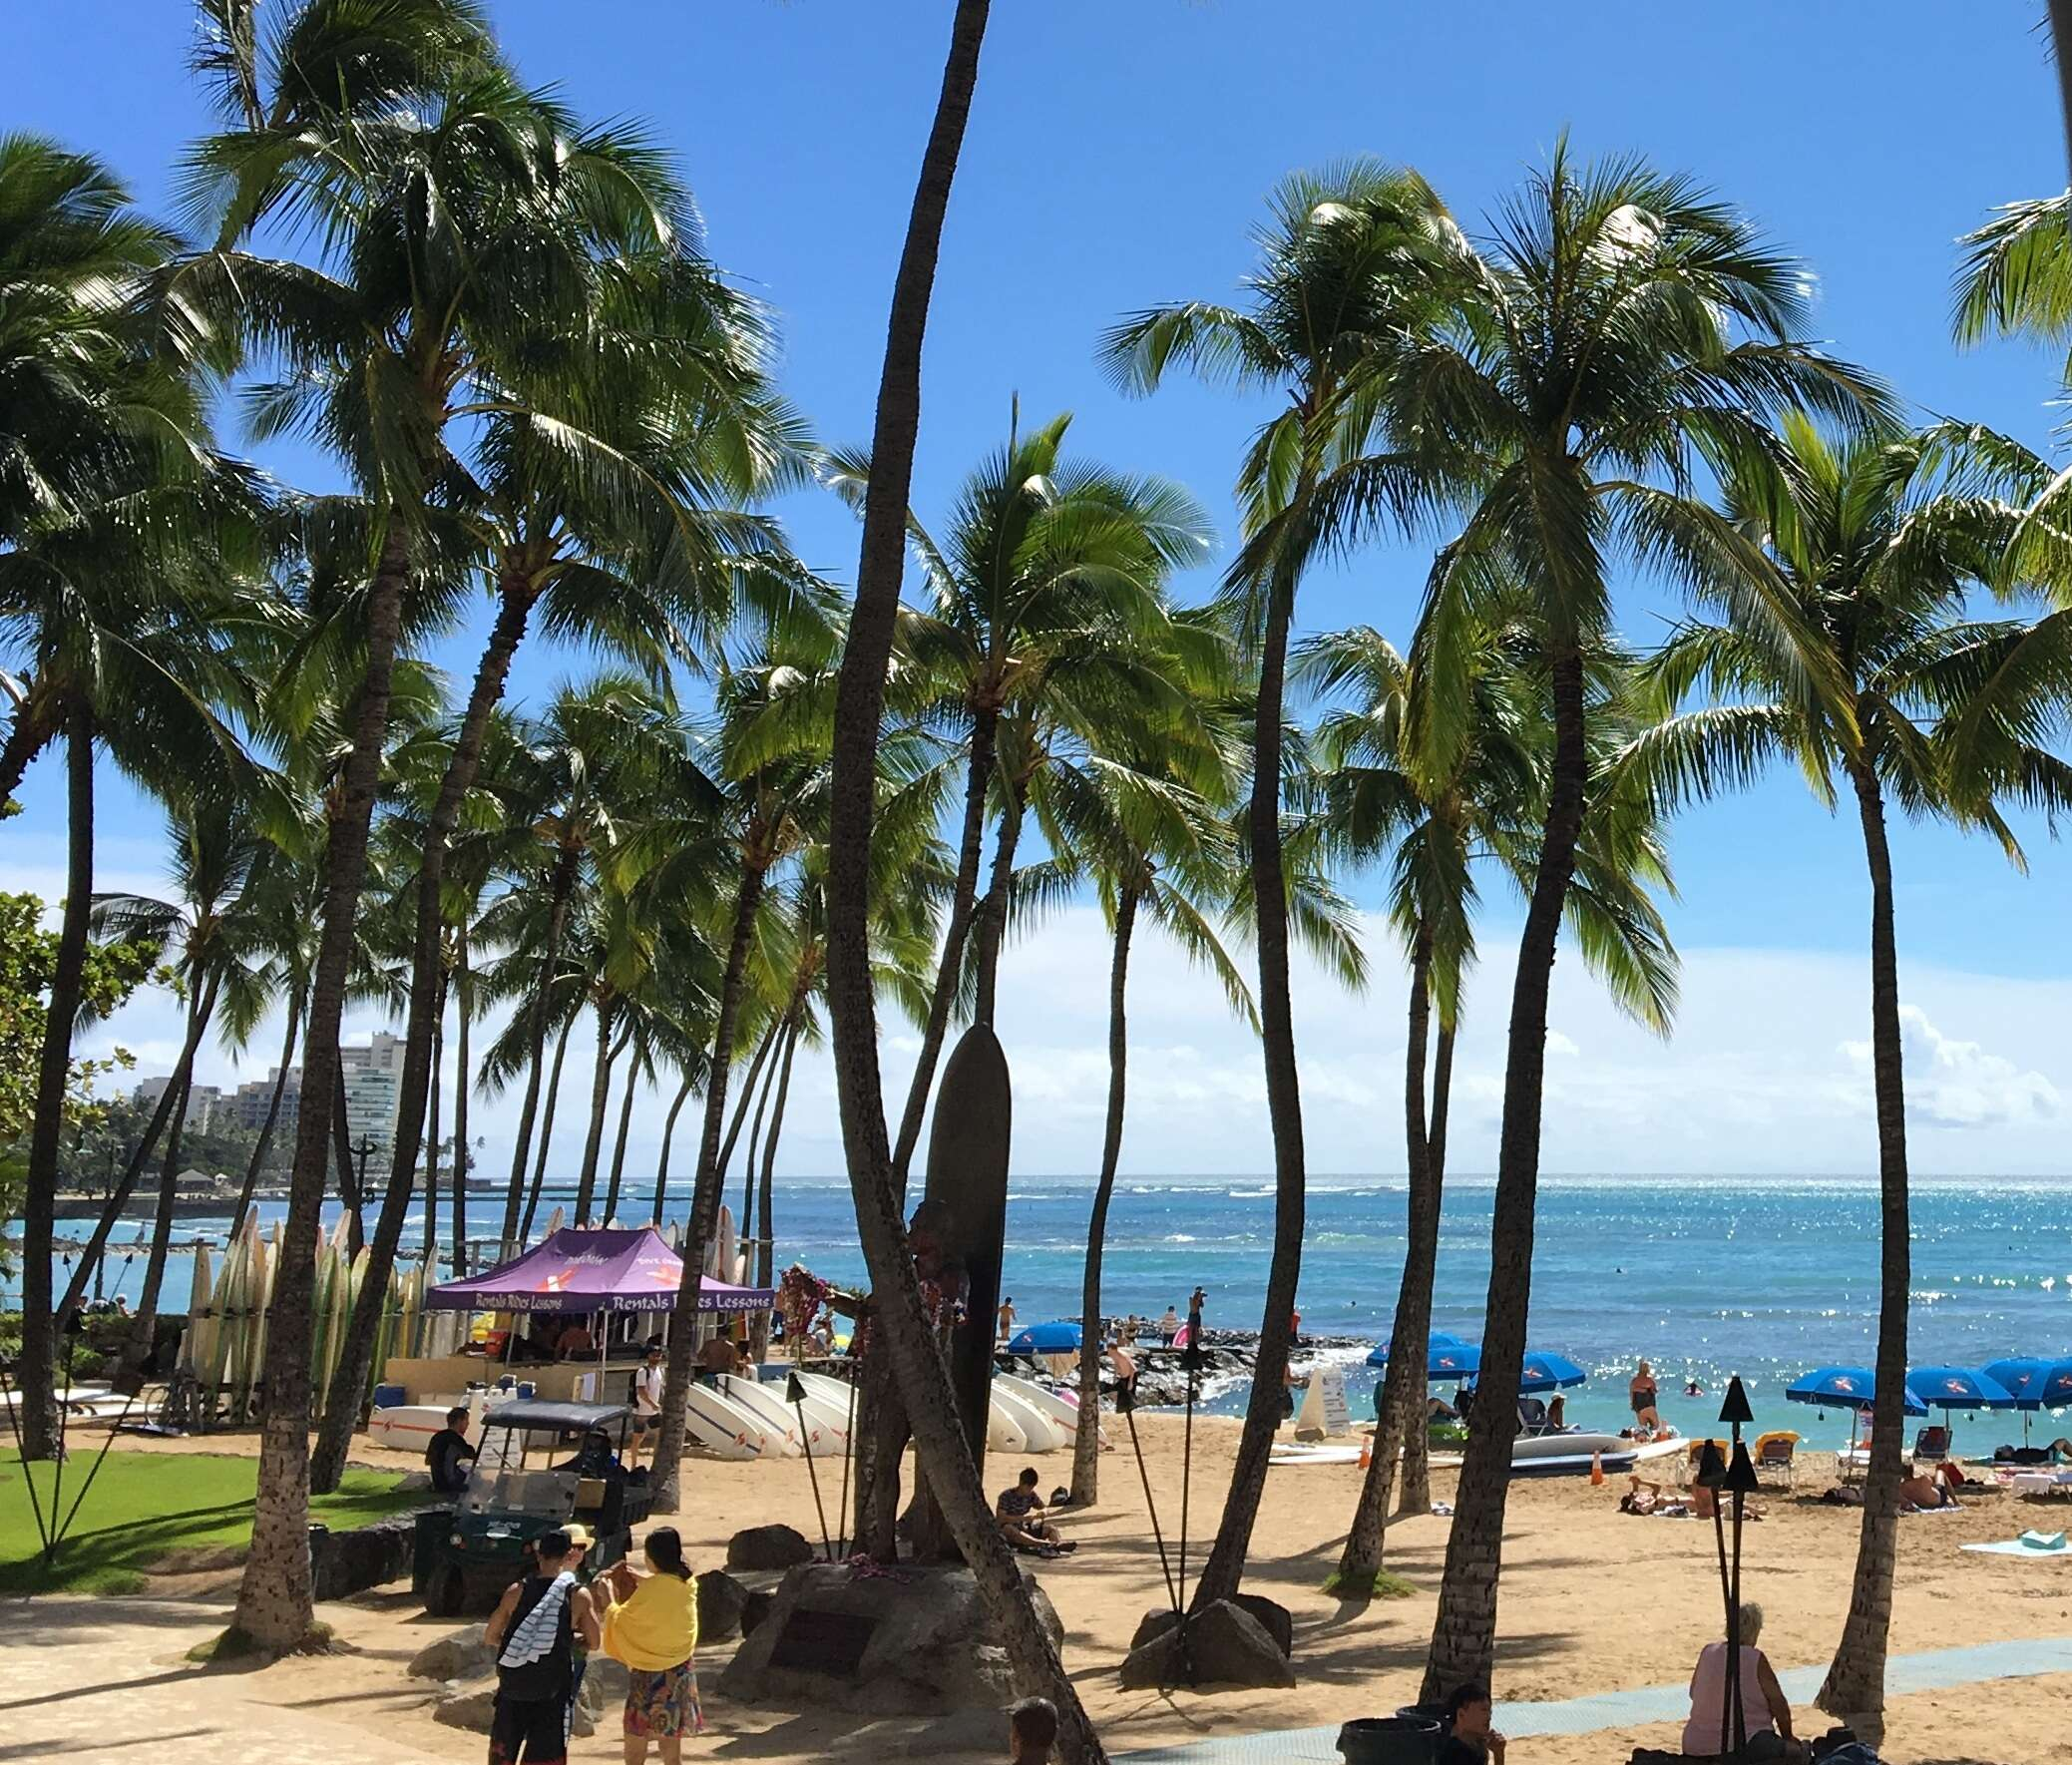 Two different types of trips to Honolulu, Oahu